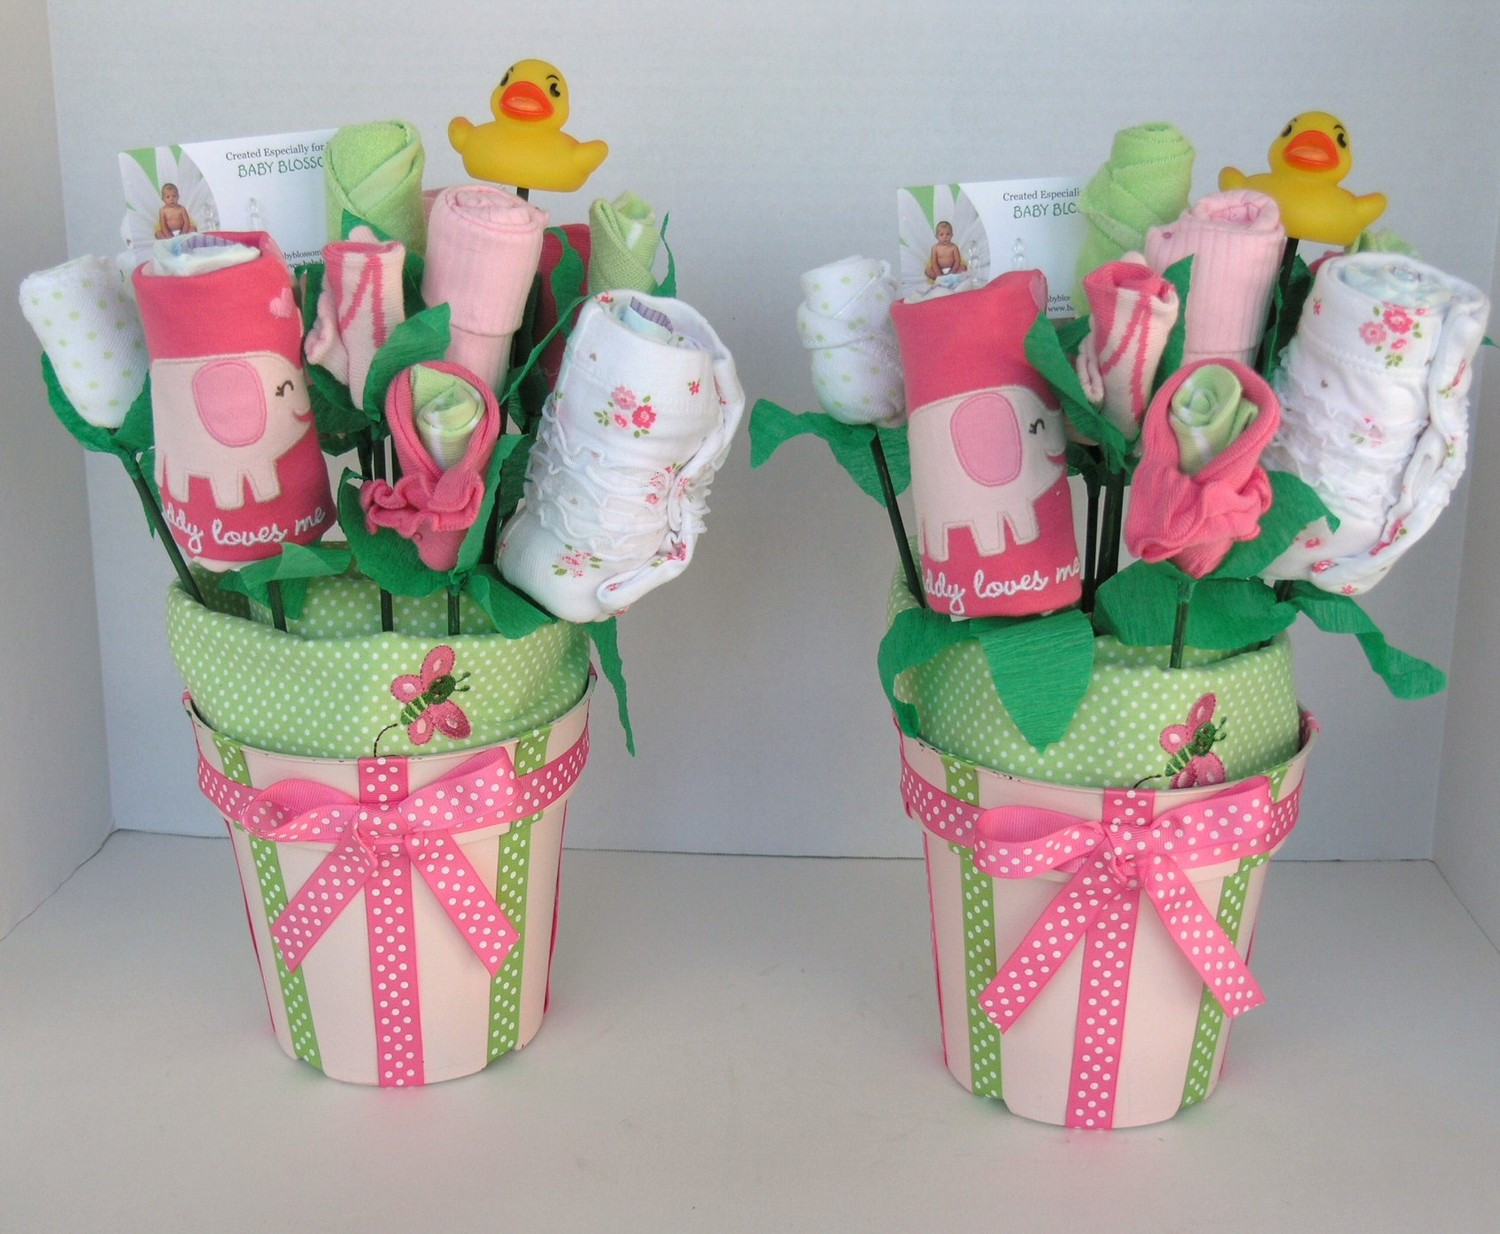 Best ideas about Newborn Baby Girl Gift Ideas . Save or Pin Five Best DIY Baby Gifting Ideas for The Little Special Now.